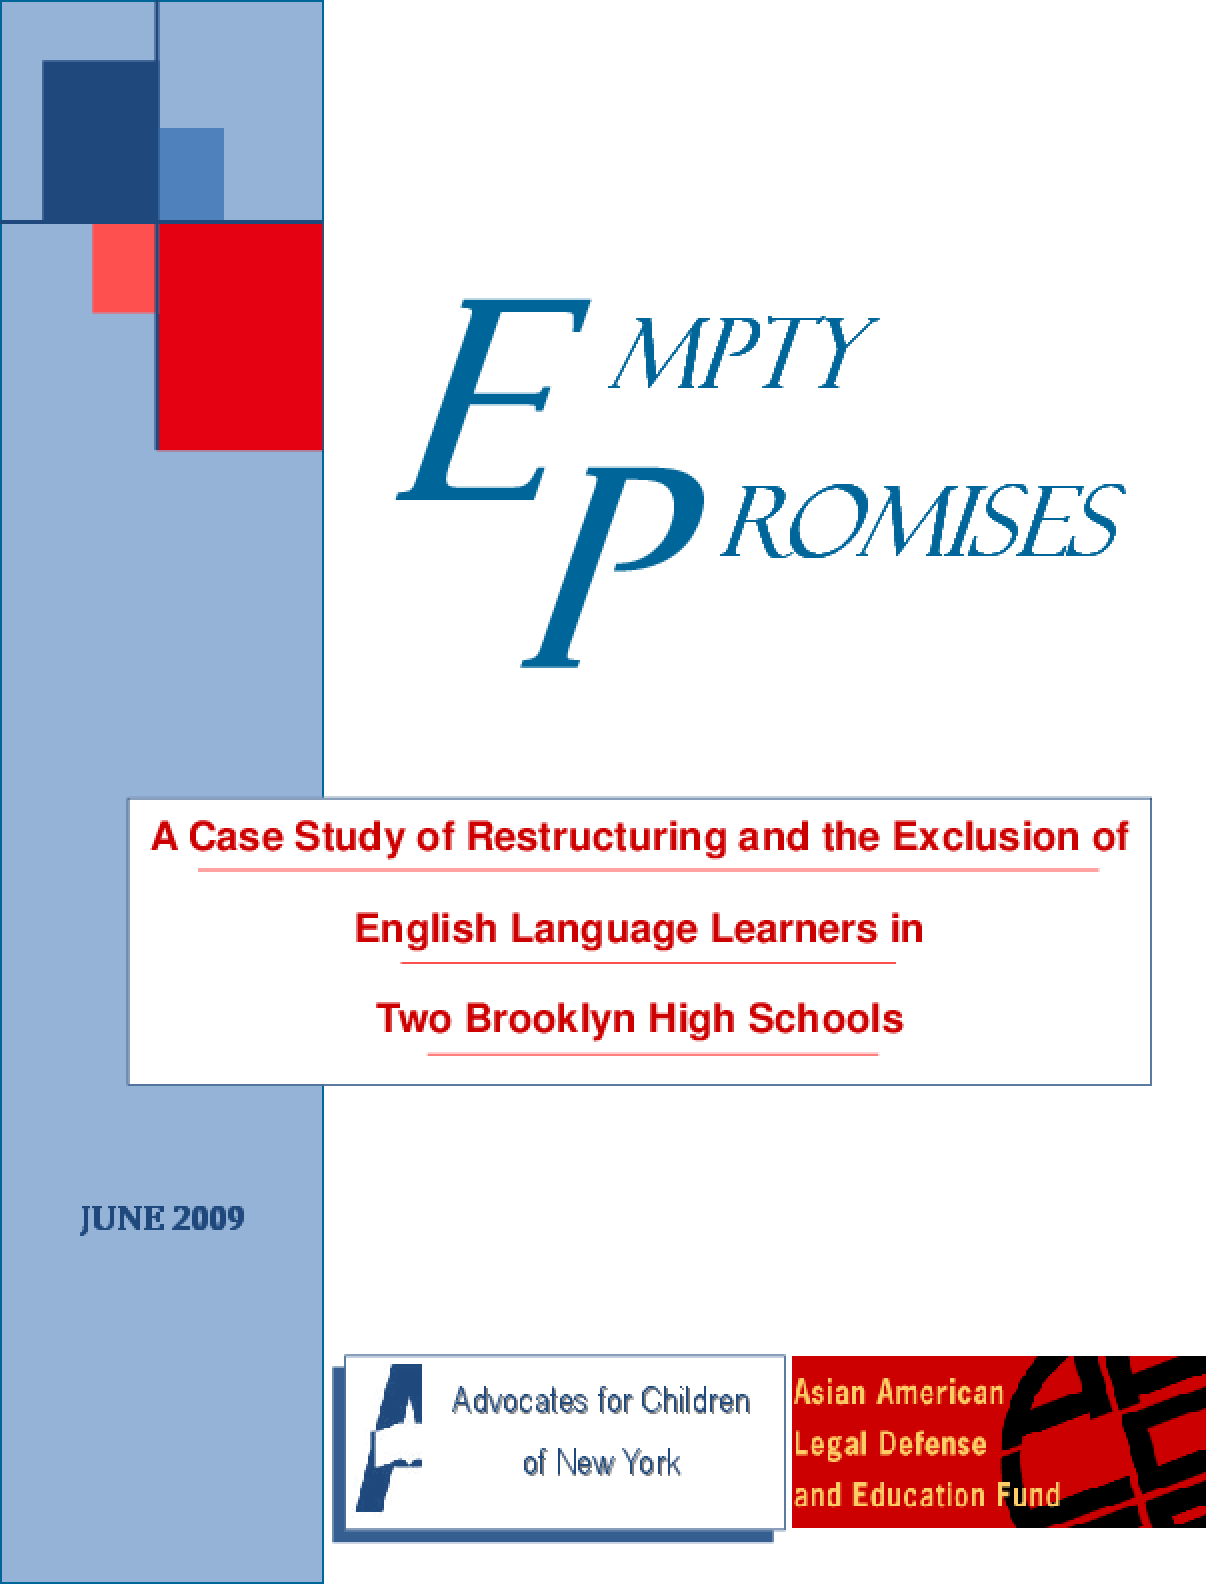 Empty Promises: A Case Study of Restructuring and the Exclusion of English Language Learners in Two Brooklyn High Schools